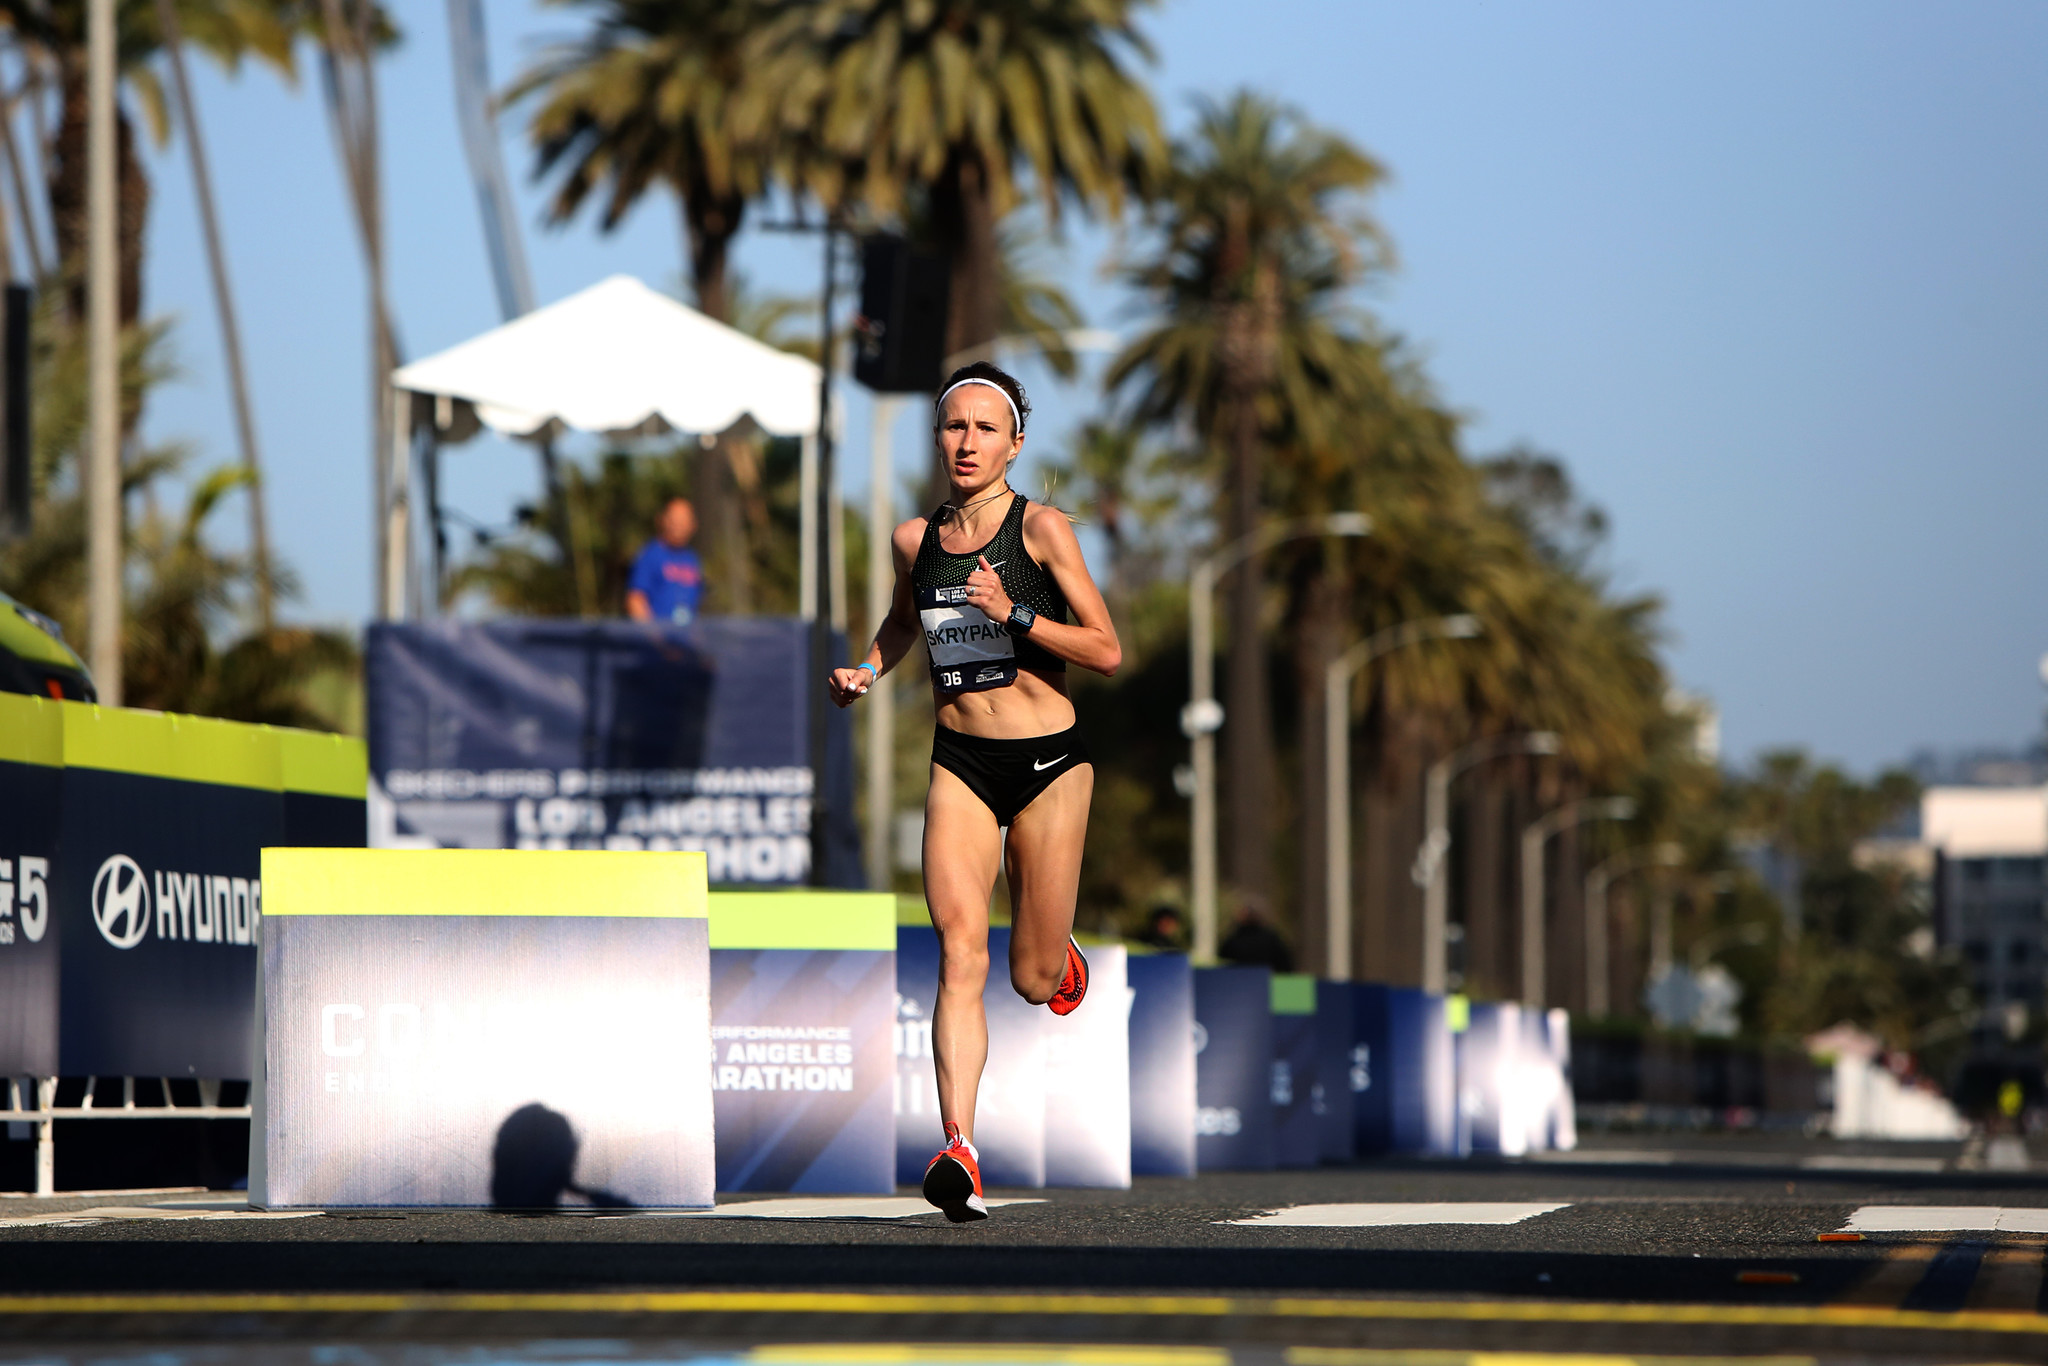 LOS ANGELES, CA-MARCH 24, 2019: Runner Olha Skrypak finishes in fourth place for female runners duri